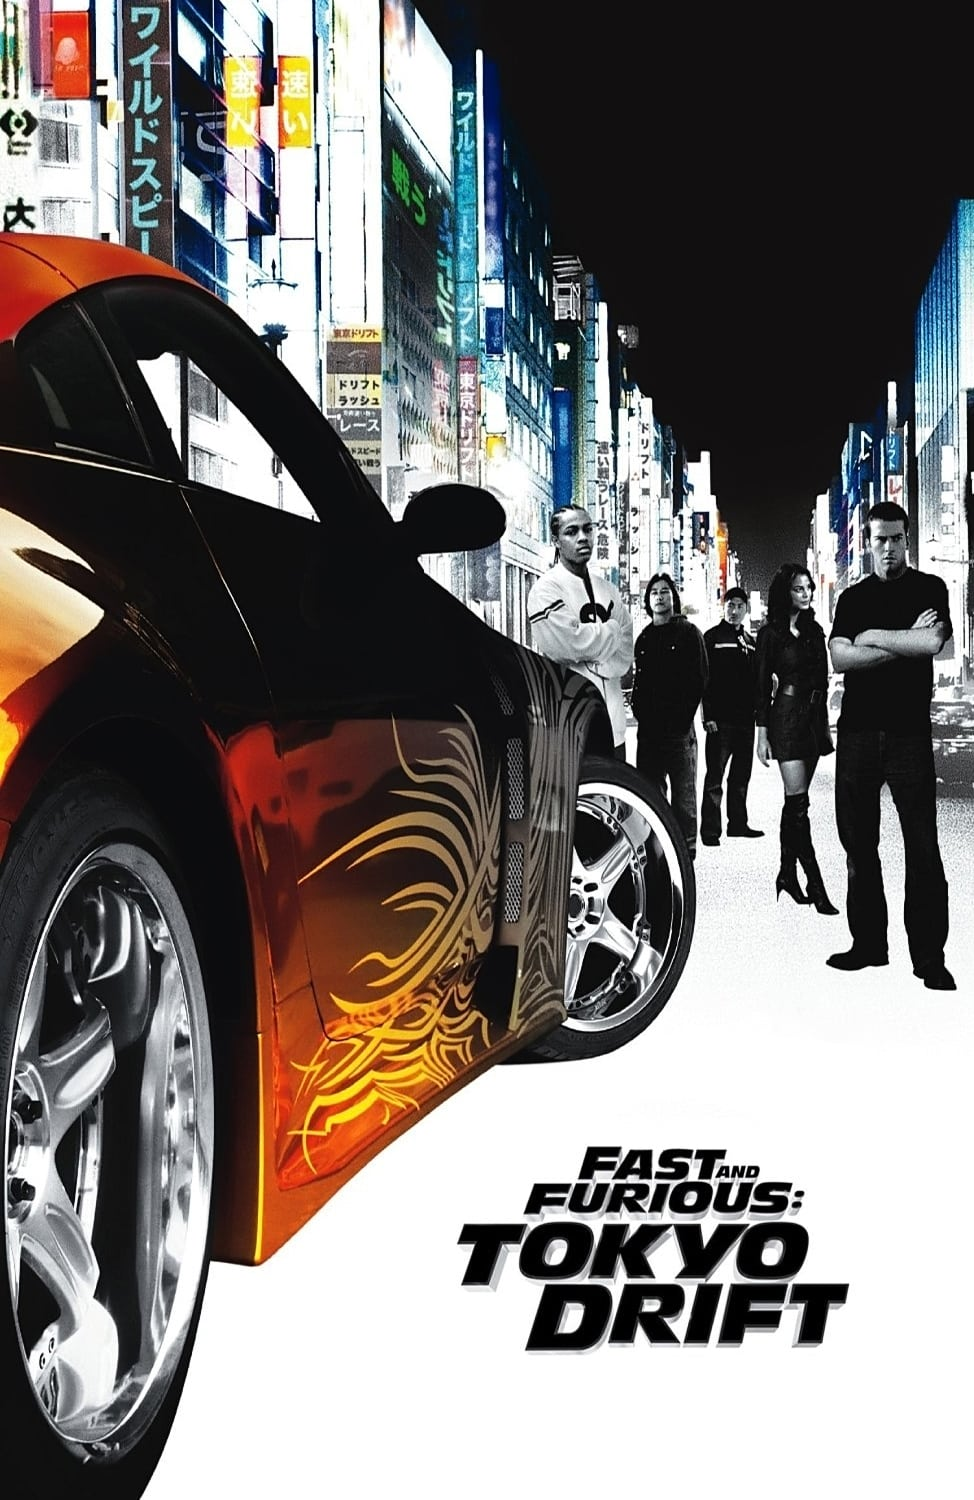 film fast furious 3 tokyo drift 2006 en streaming vf complet filmstreaming hd com. Black Bedroom Furniture Sets. Home Design Ideas